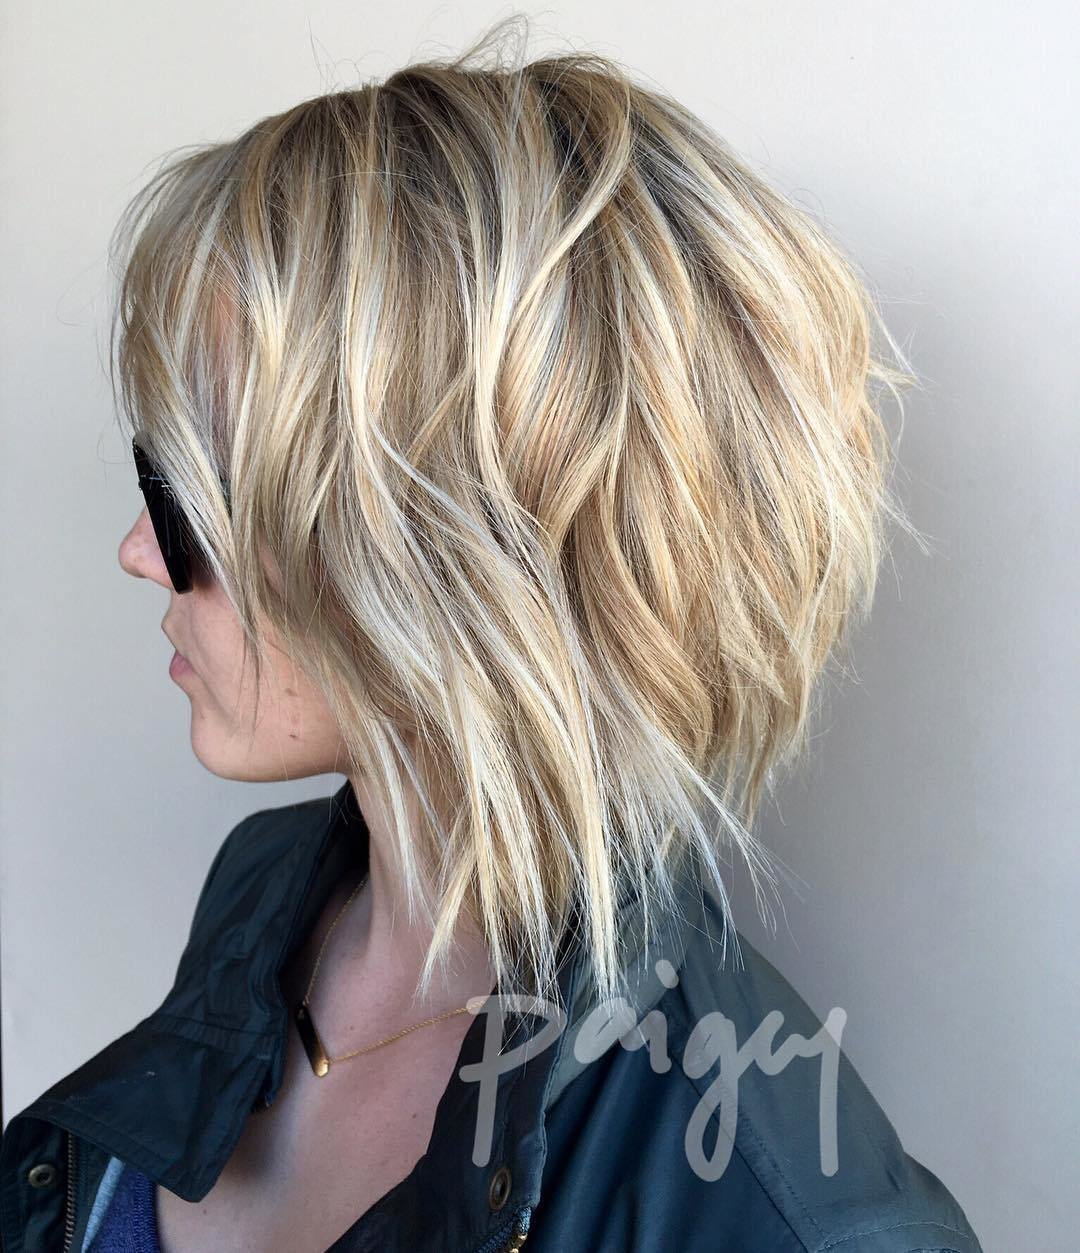 New 10 Trendy Choppy Lob Haircuts For Women Best Medium Hair Styles 2019 Ideas With Pictures